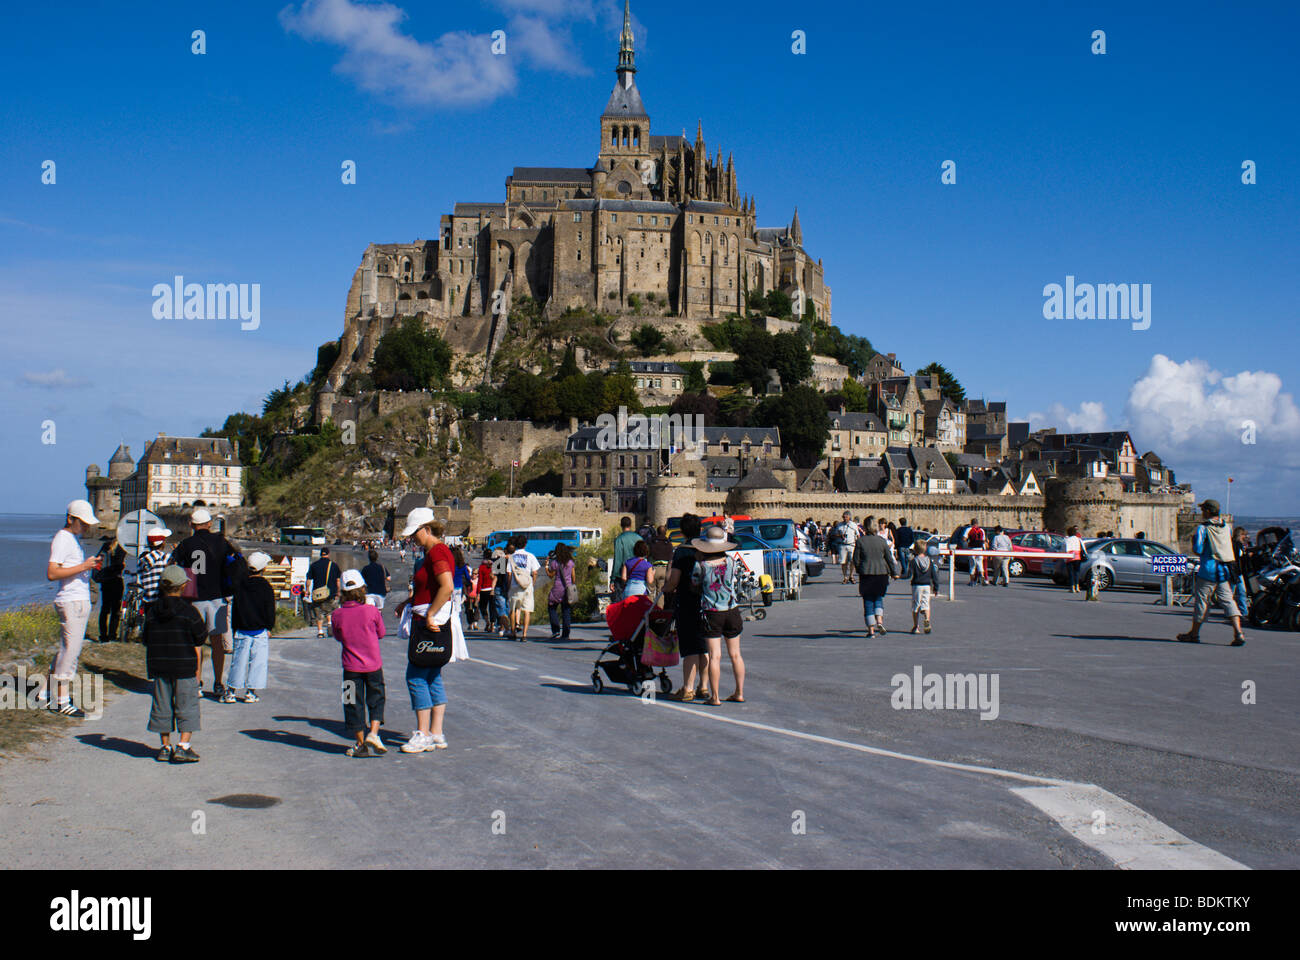 Tourists at Mont Saint-Michel, the monastery and village on a tidal island between Brittany and Normandy - Stock Image